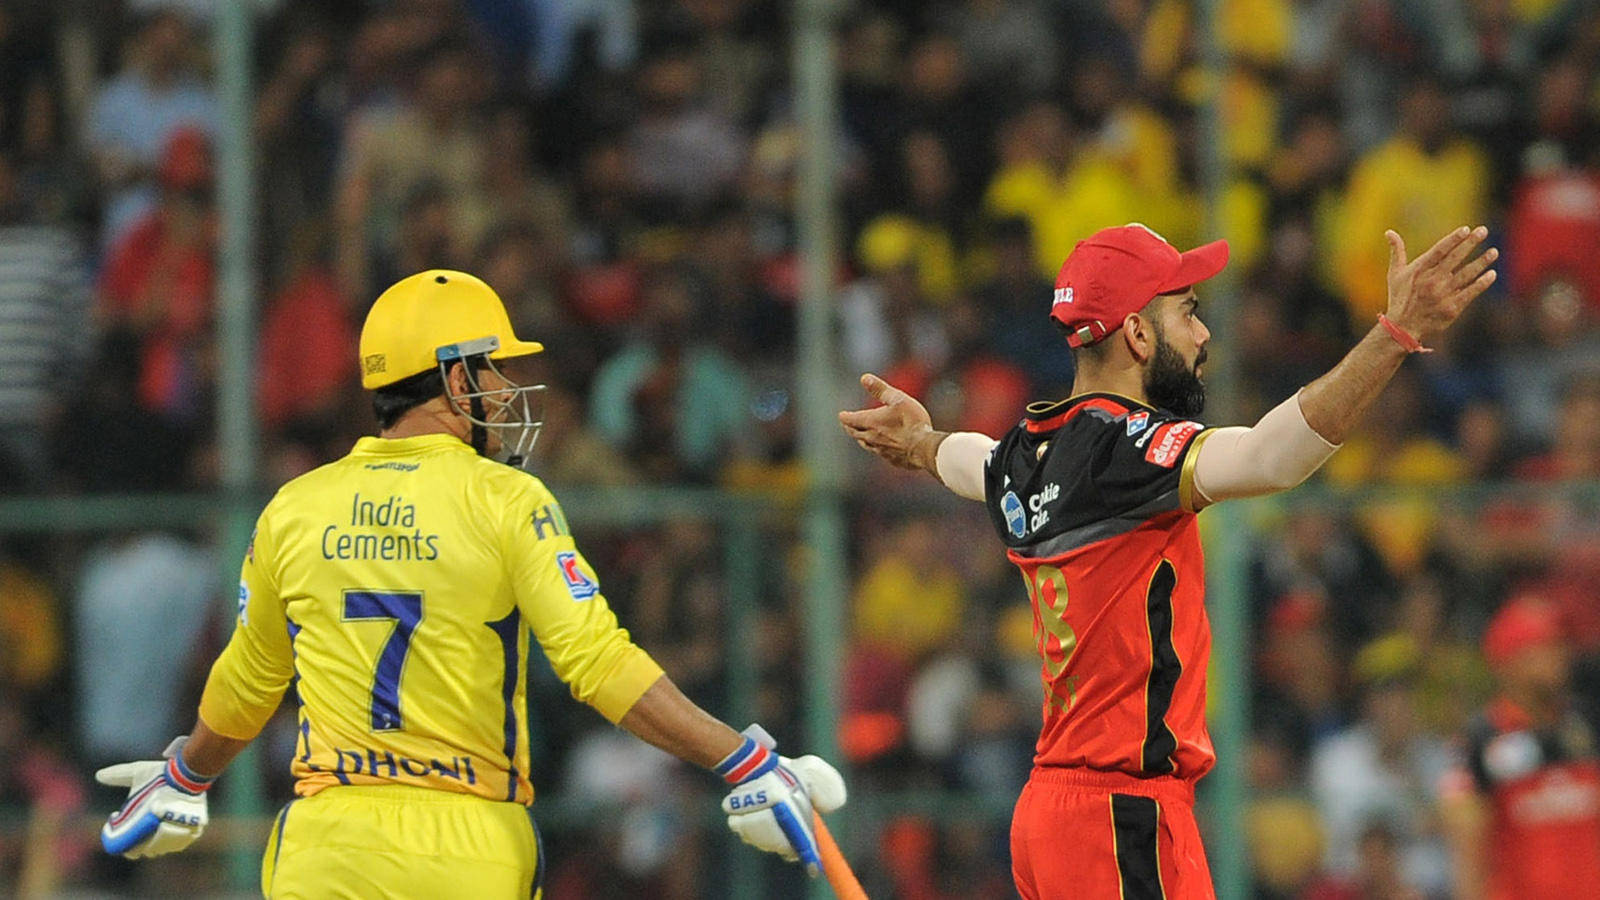 ipl-13-set-to-be-prime-time-viewing-on-television-in-india